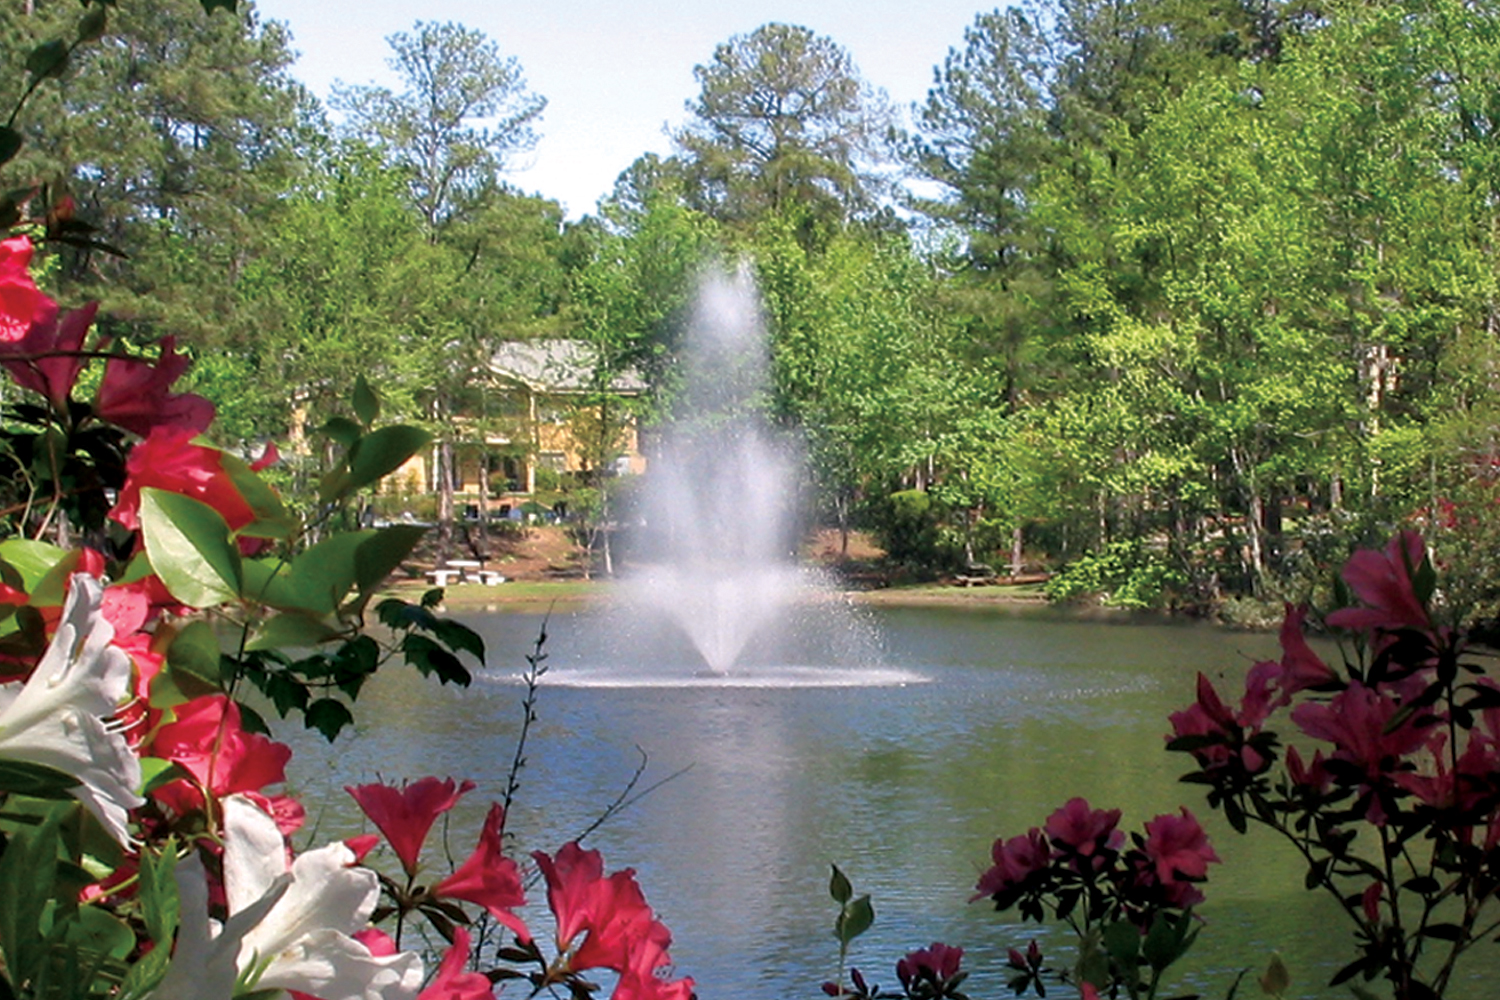 One of Otterbine's Residential Aerating Fountains